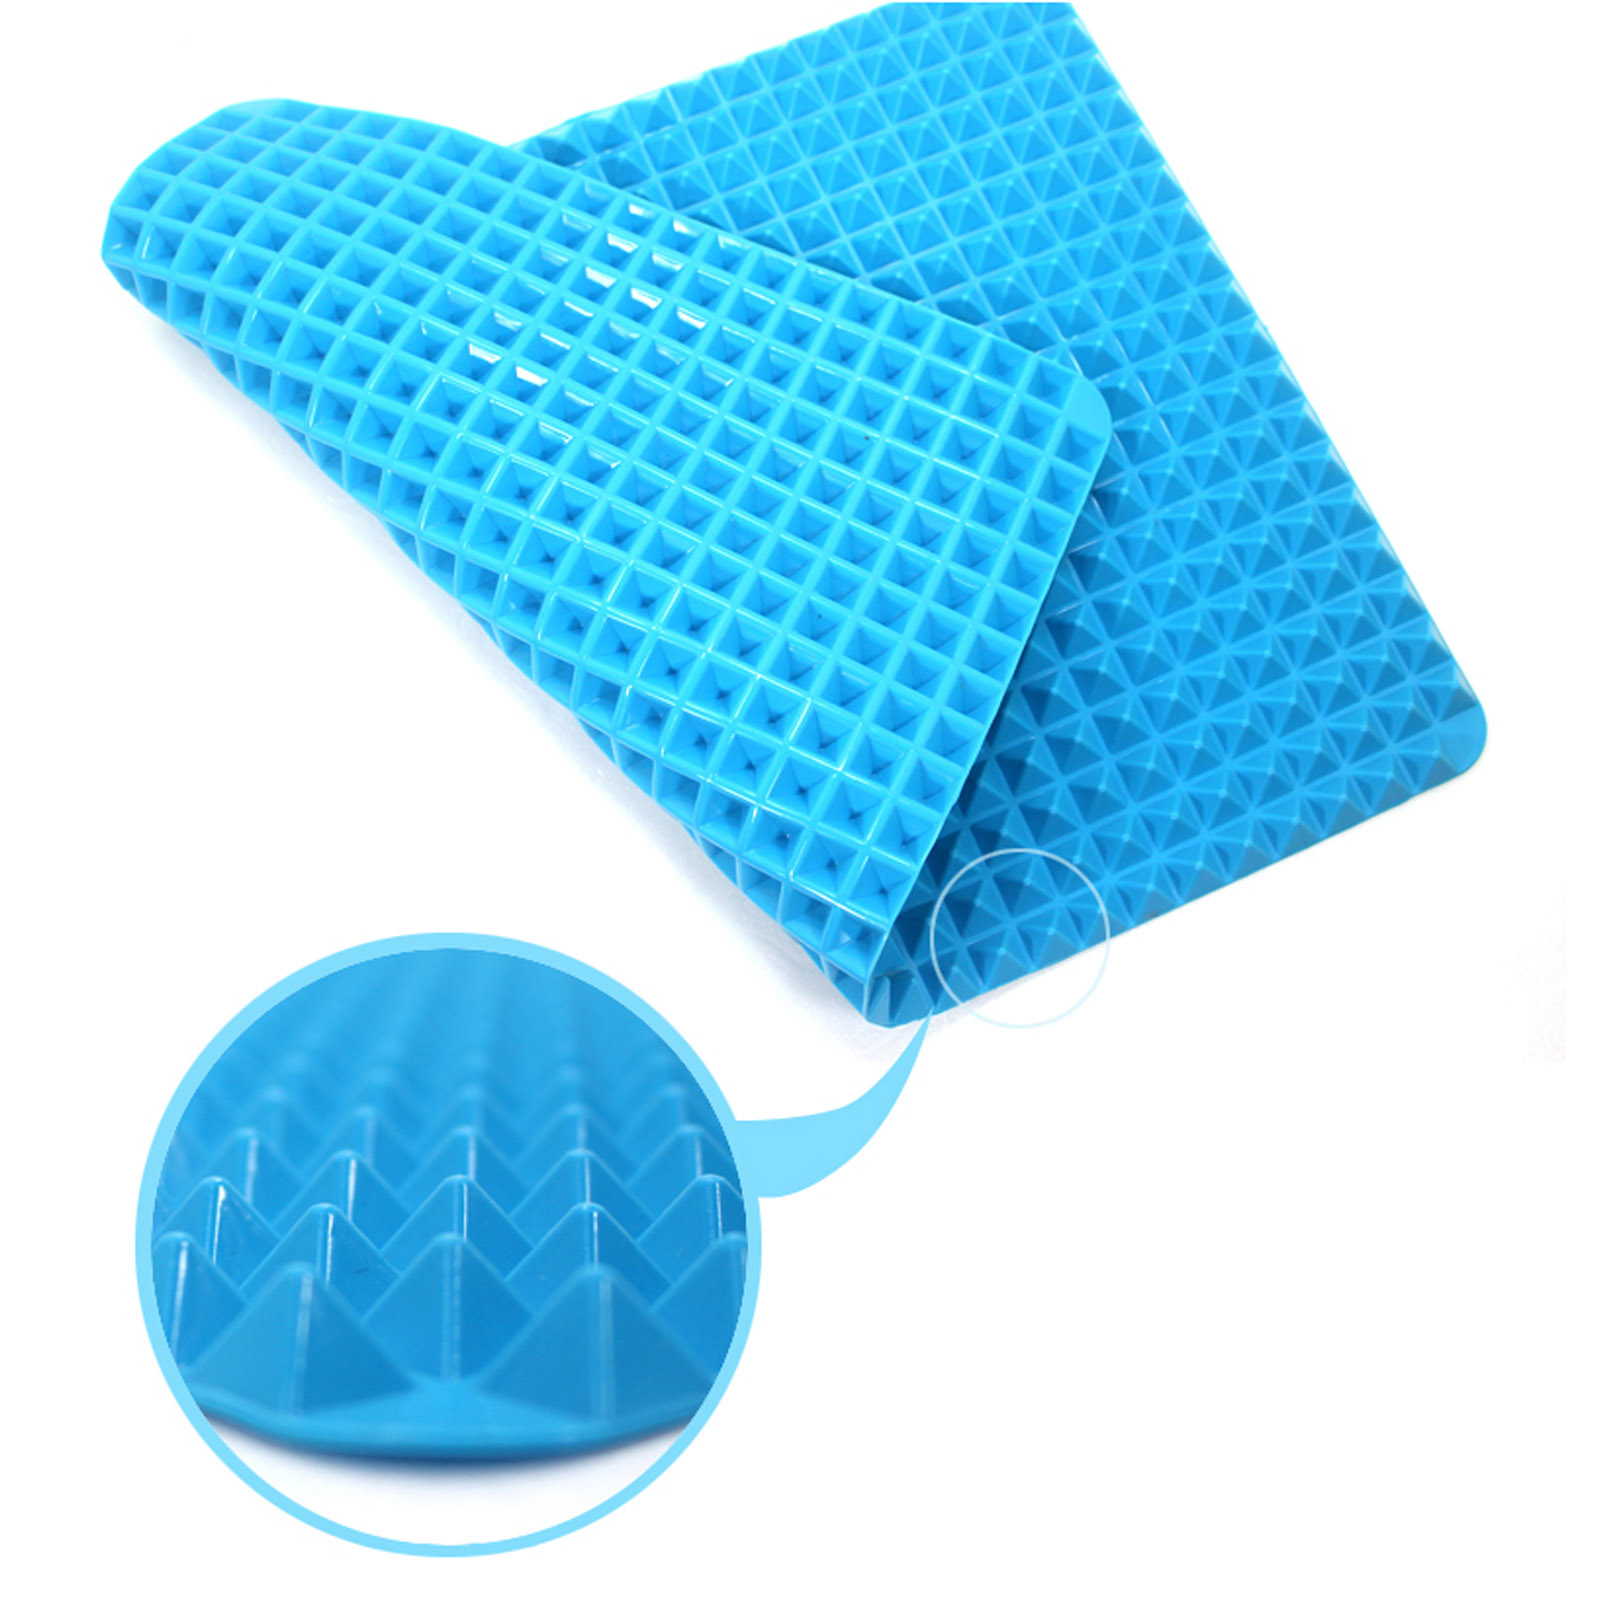 Deco Esterar Dish Silicone Drying Mat Draining Rack